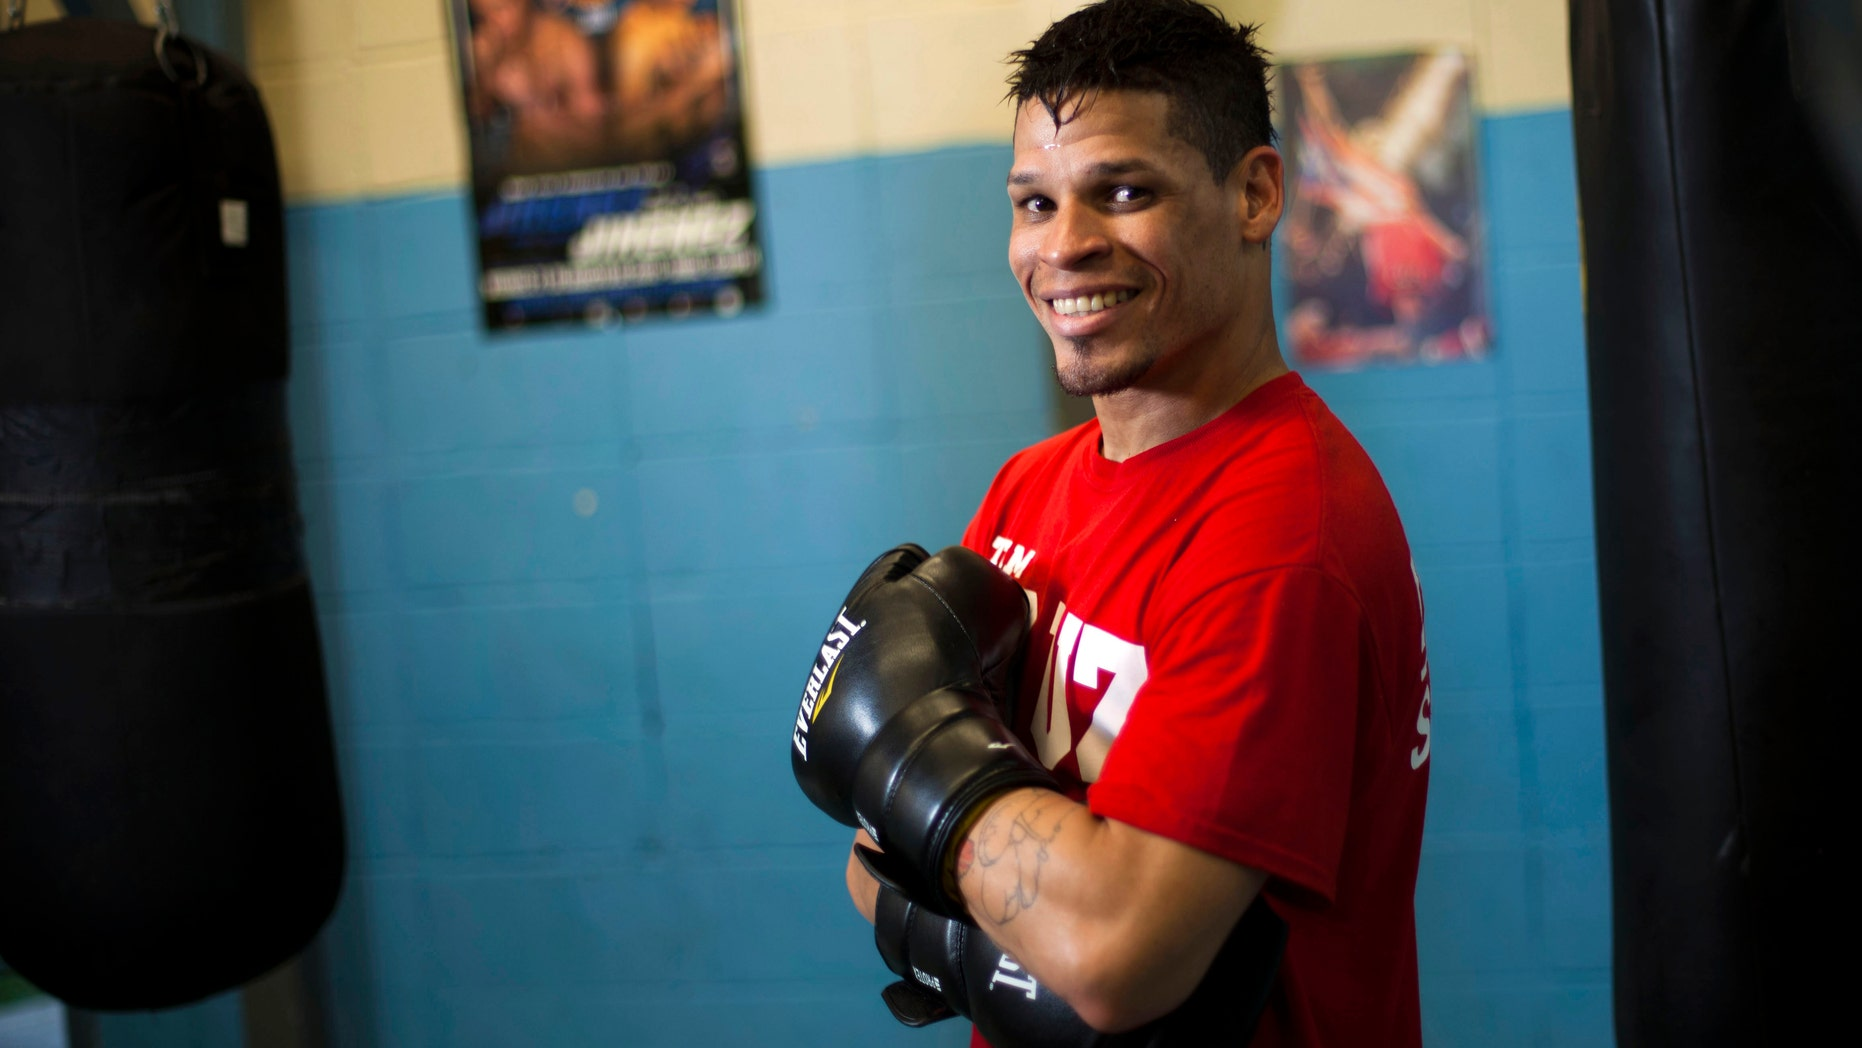 Boxer Orlando Cruz poses for pictures after a training session at a public gym in San Juan, Puerto Rico, Oct. 4, 2012.